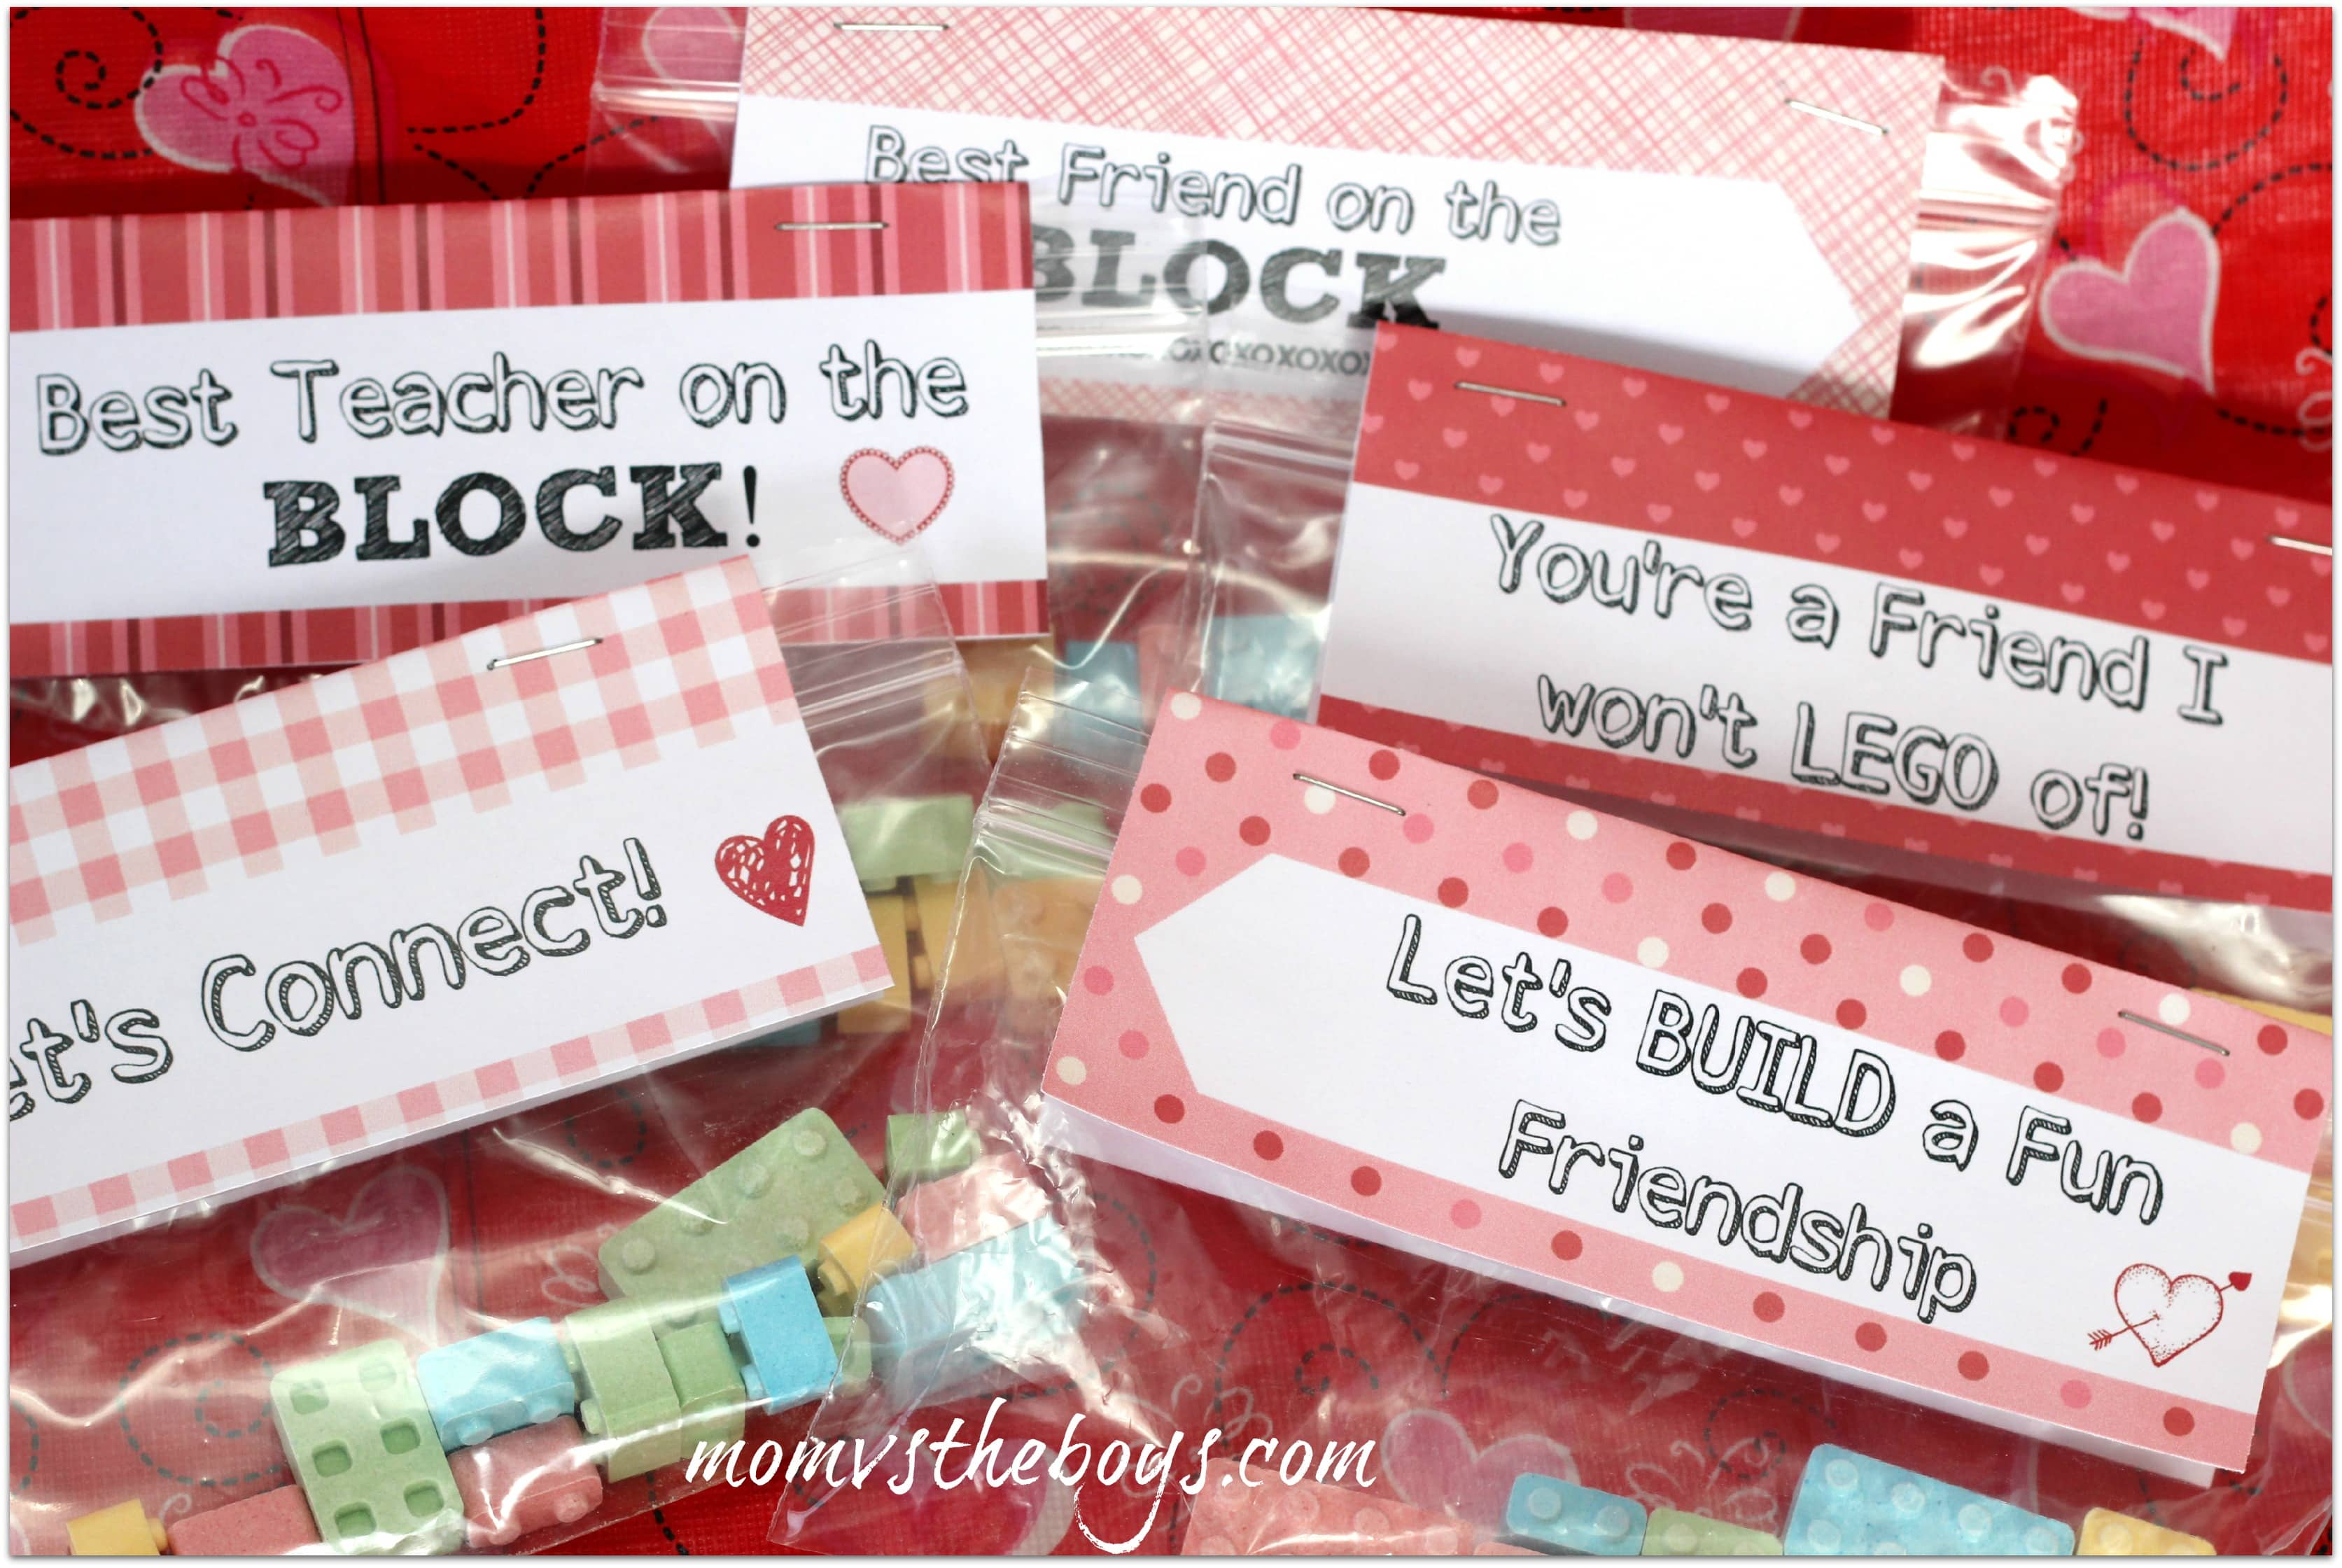 lego valentines - Cute Valentines Day Sayings For Friends